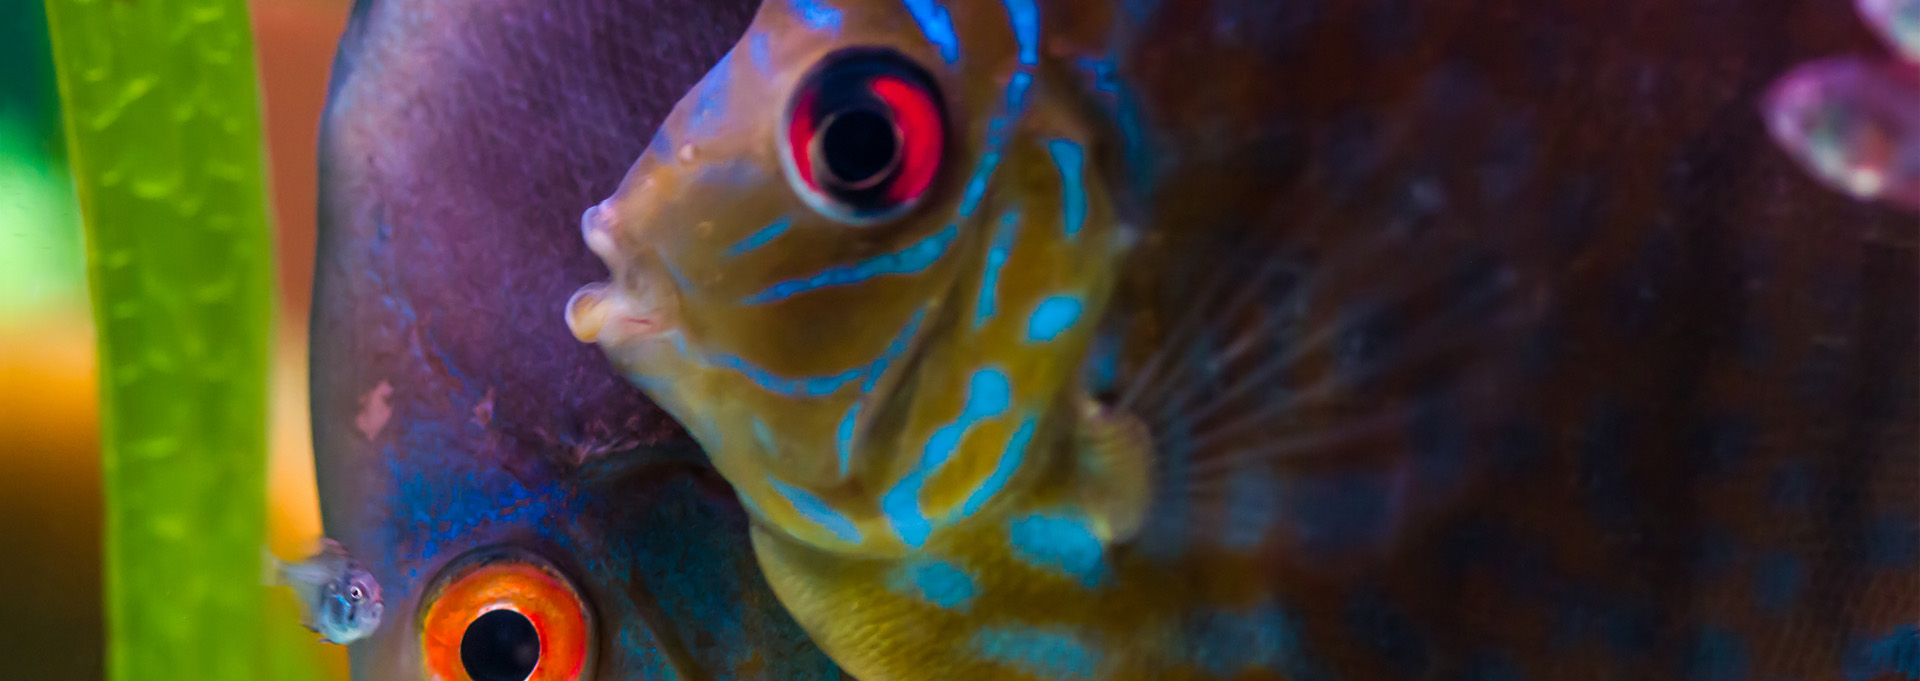 Male-and-female-discus-fish-with-baby-fish_1920x600-